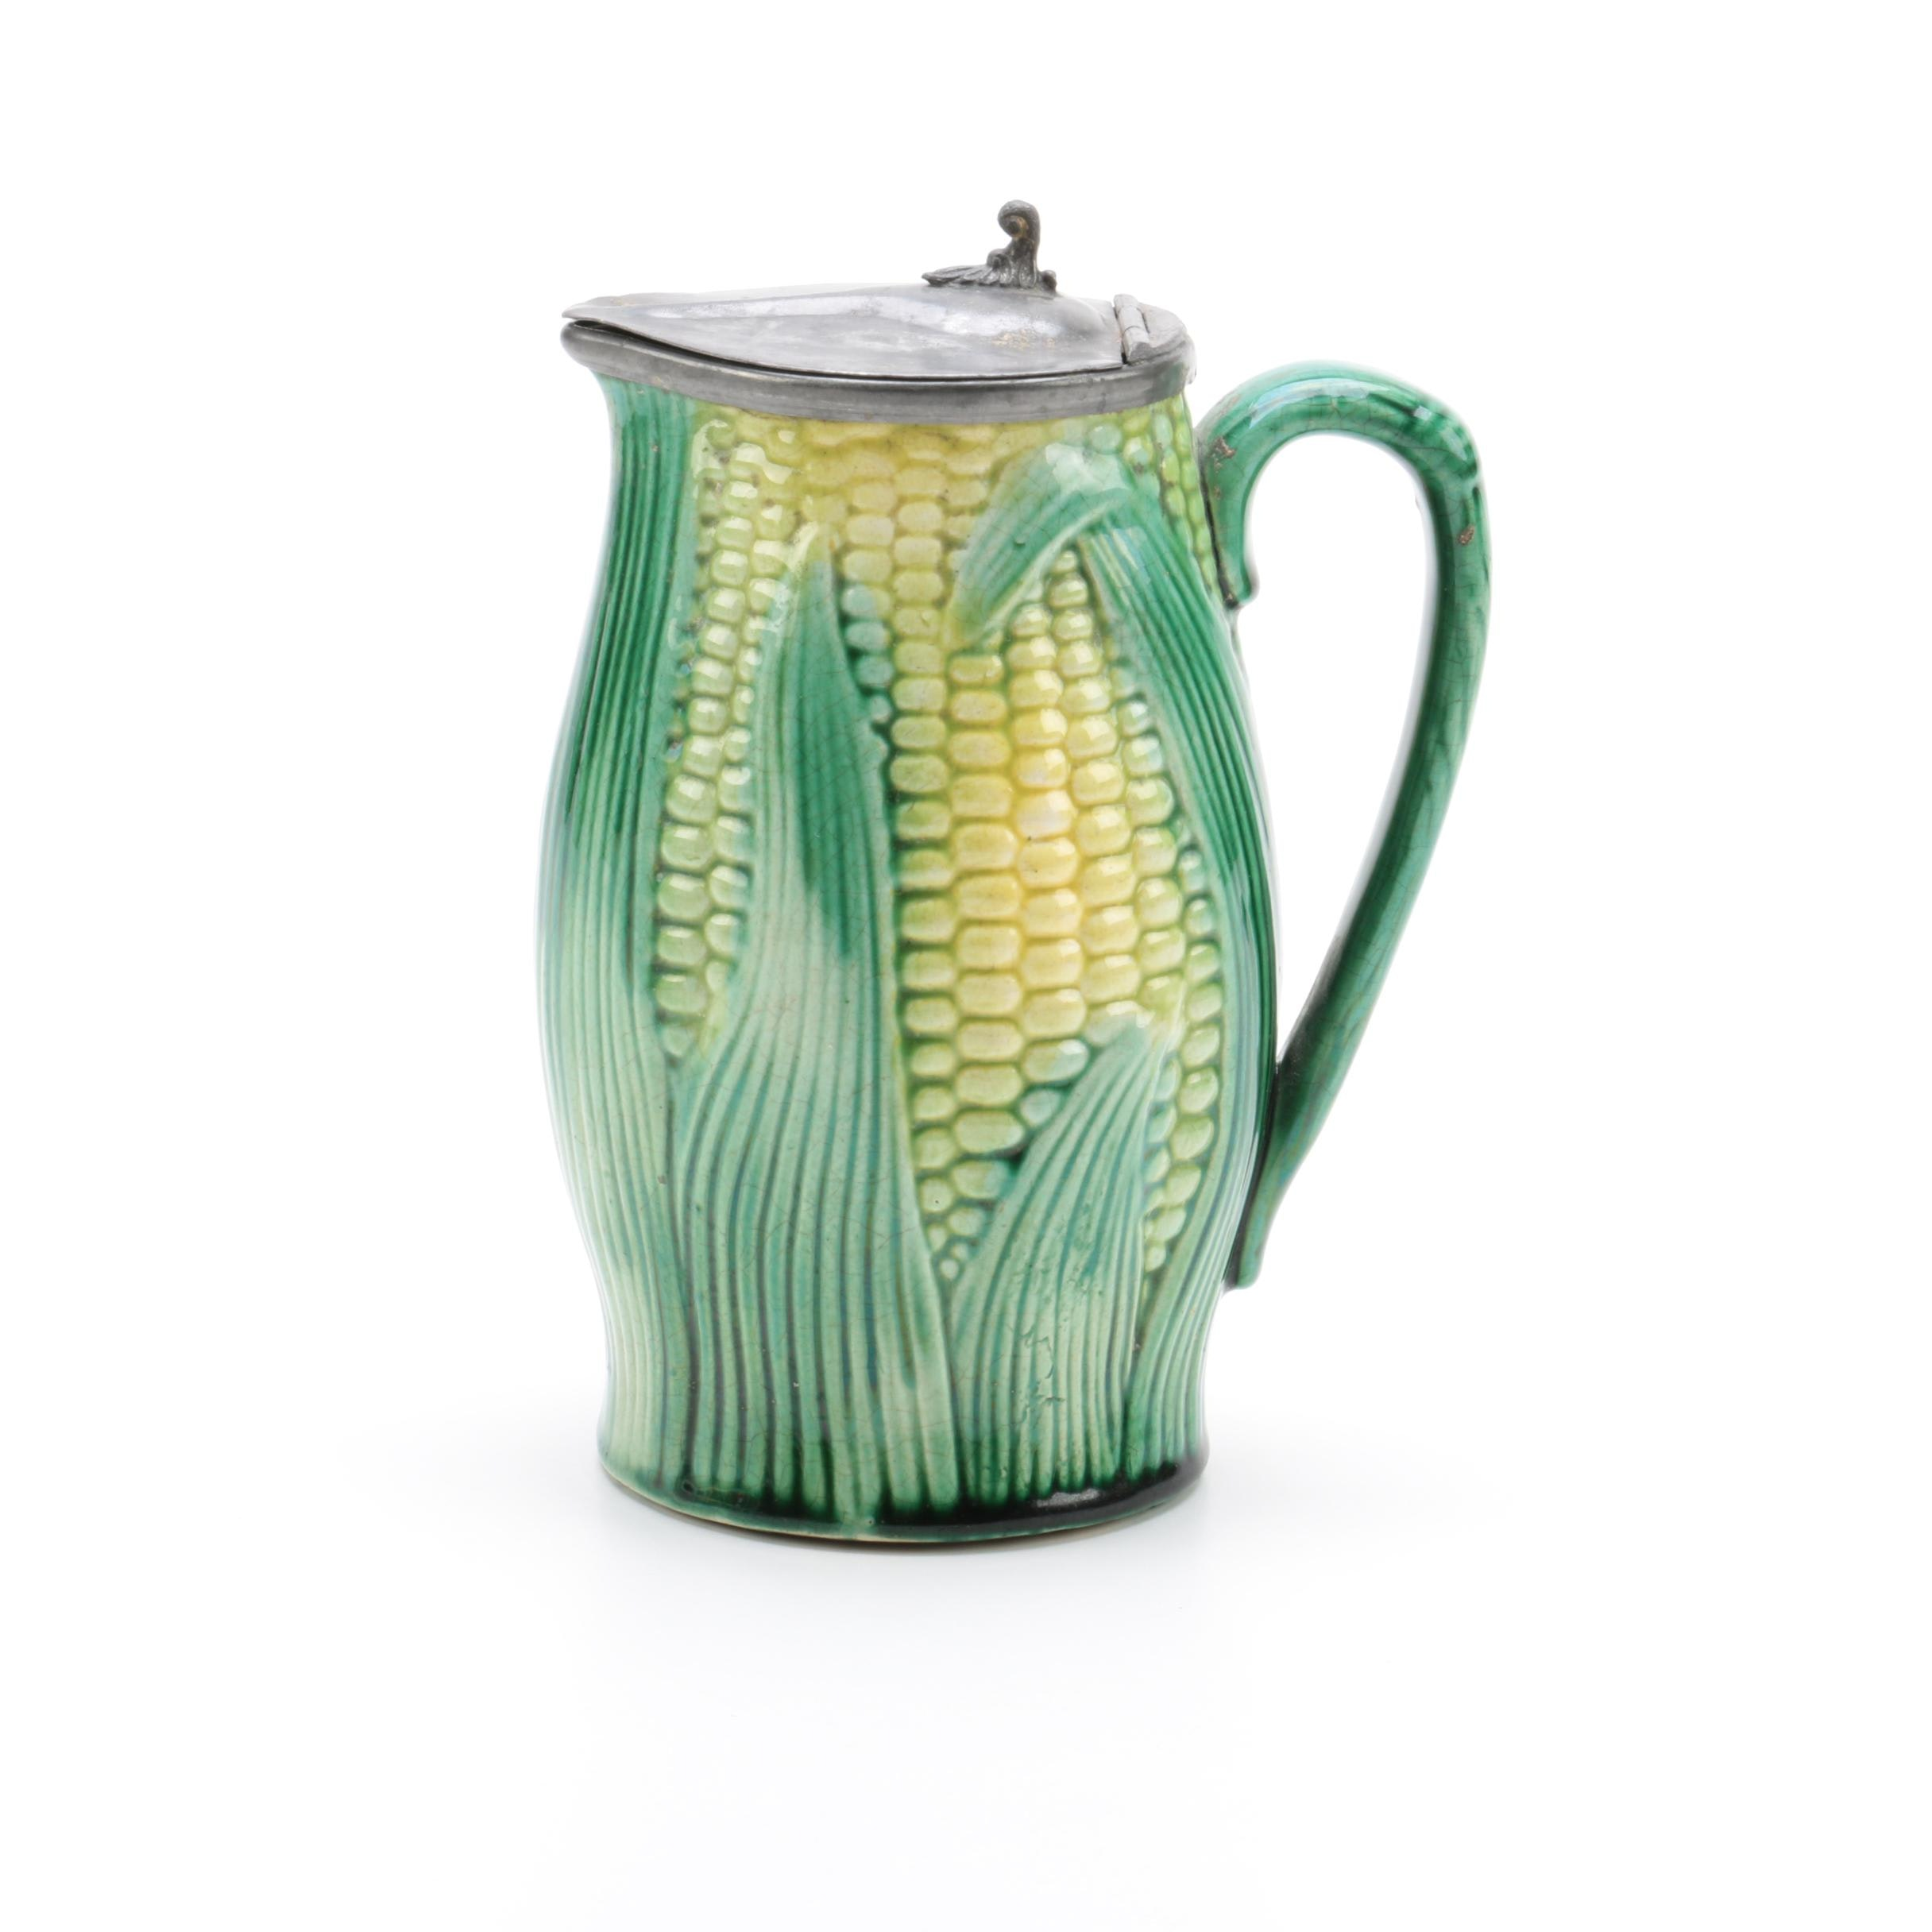 English Majolica Corn Shaped Pitcher with Pewter Lid